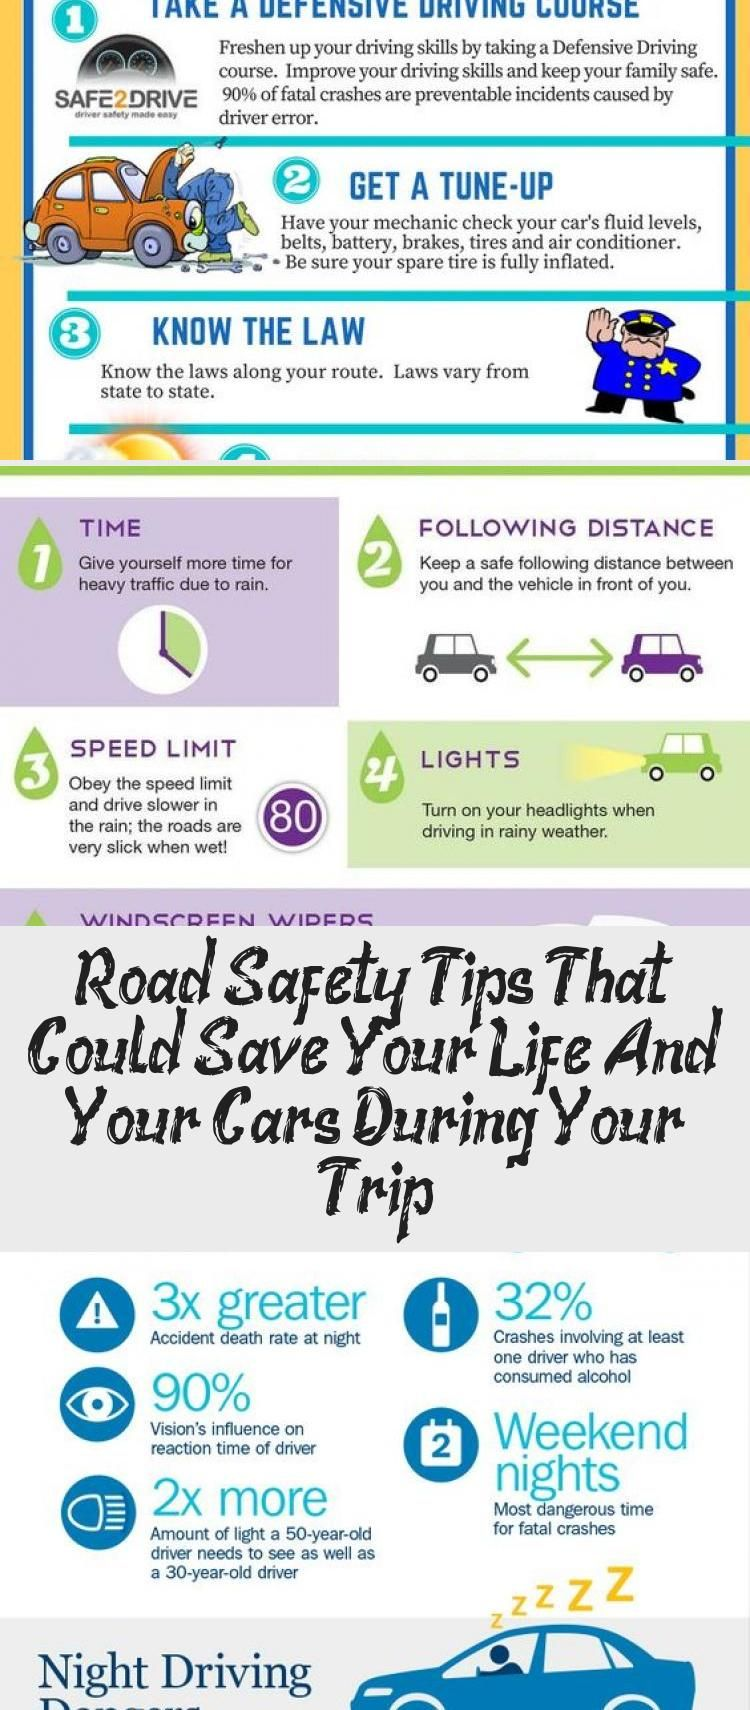 Road Safety Tips That Could Save Your Life and Your Cars